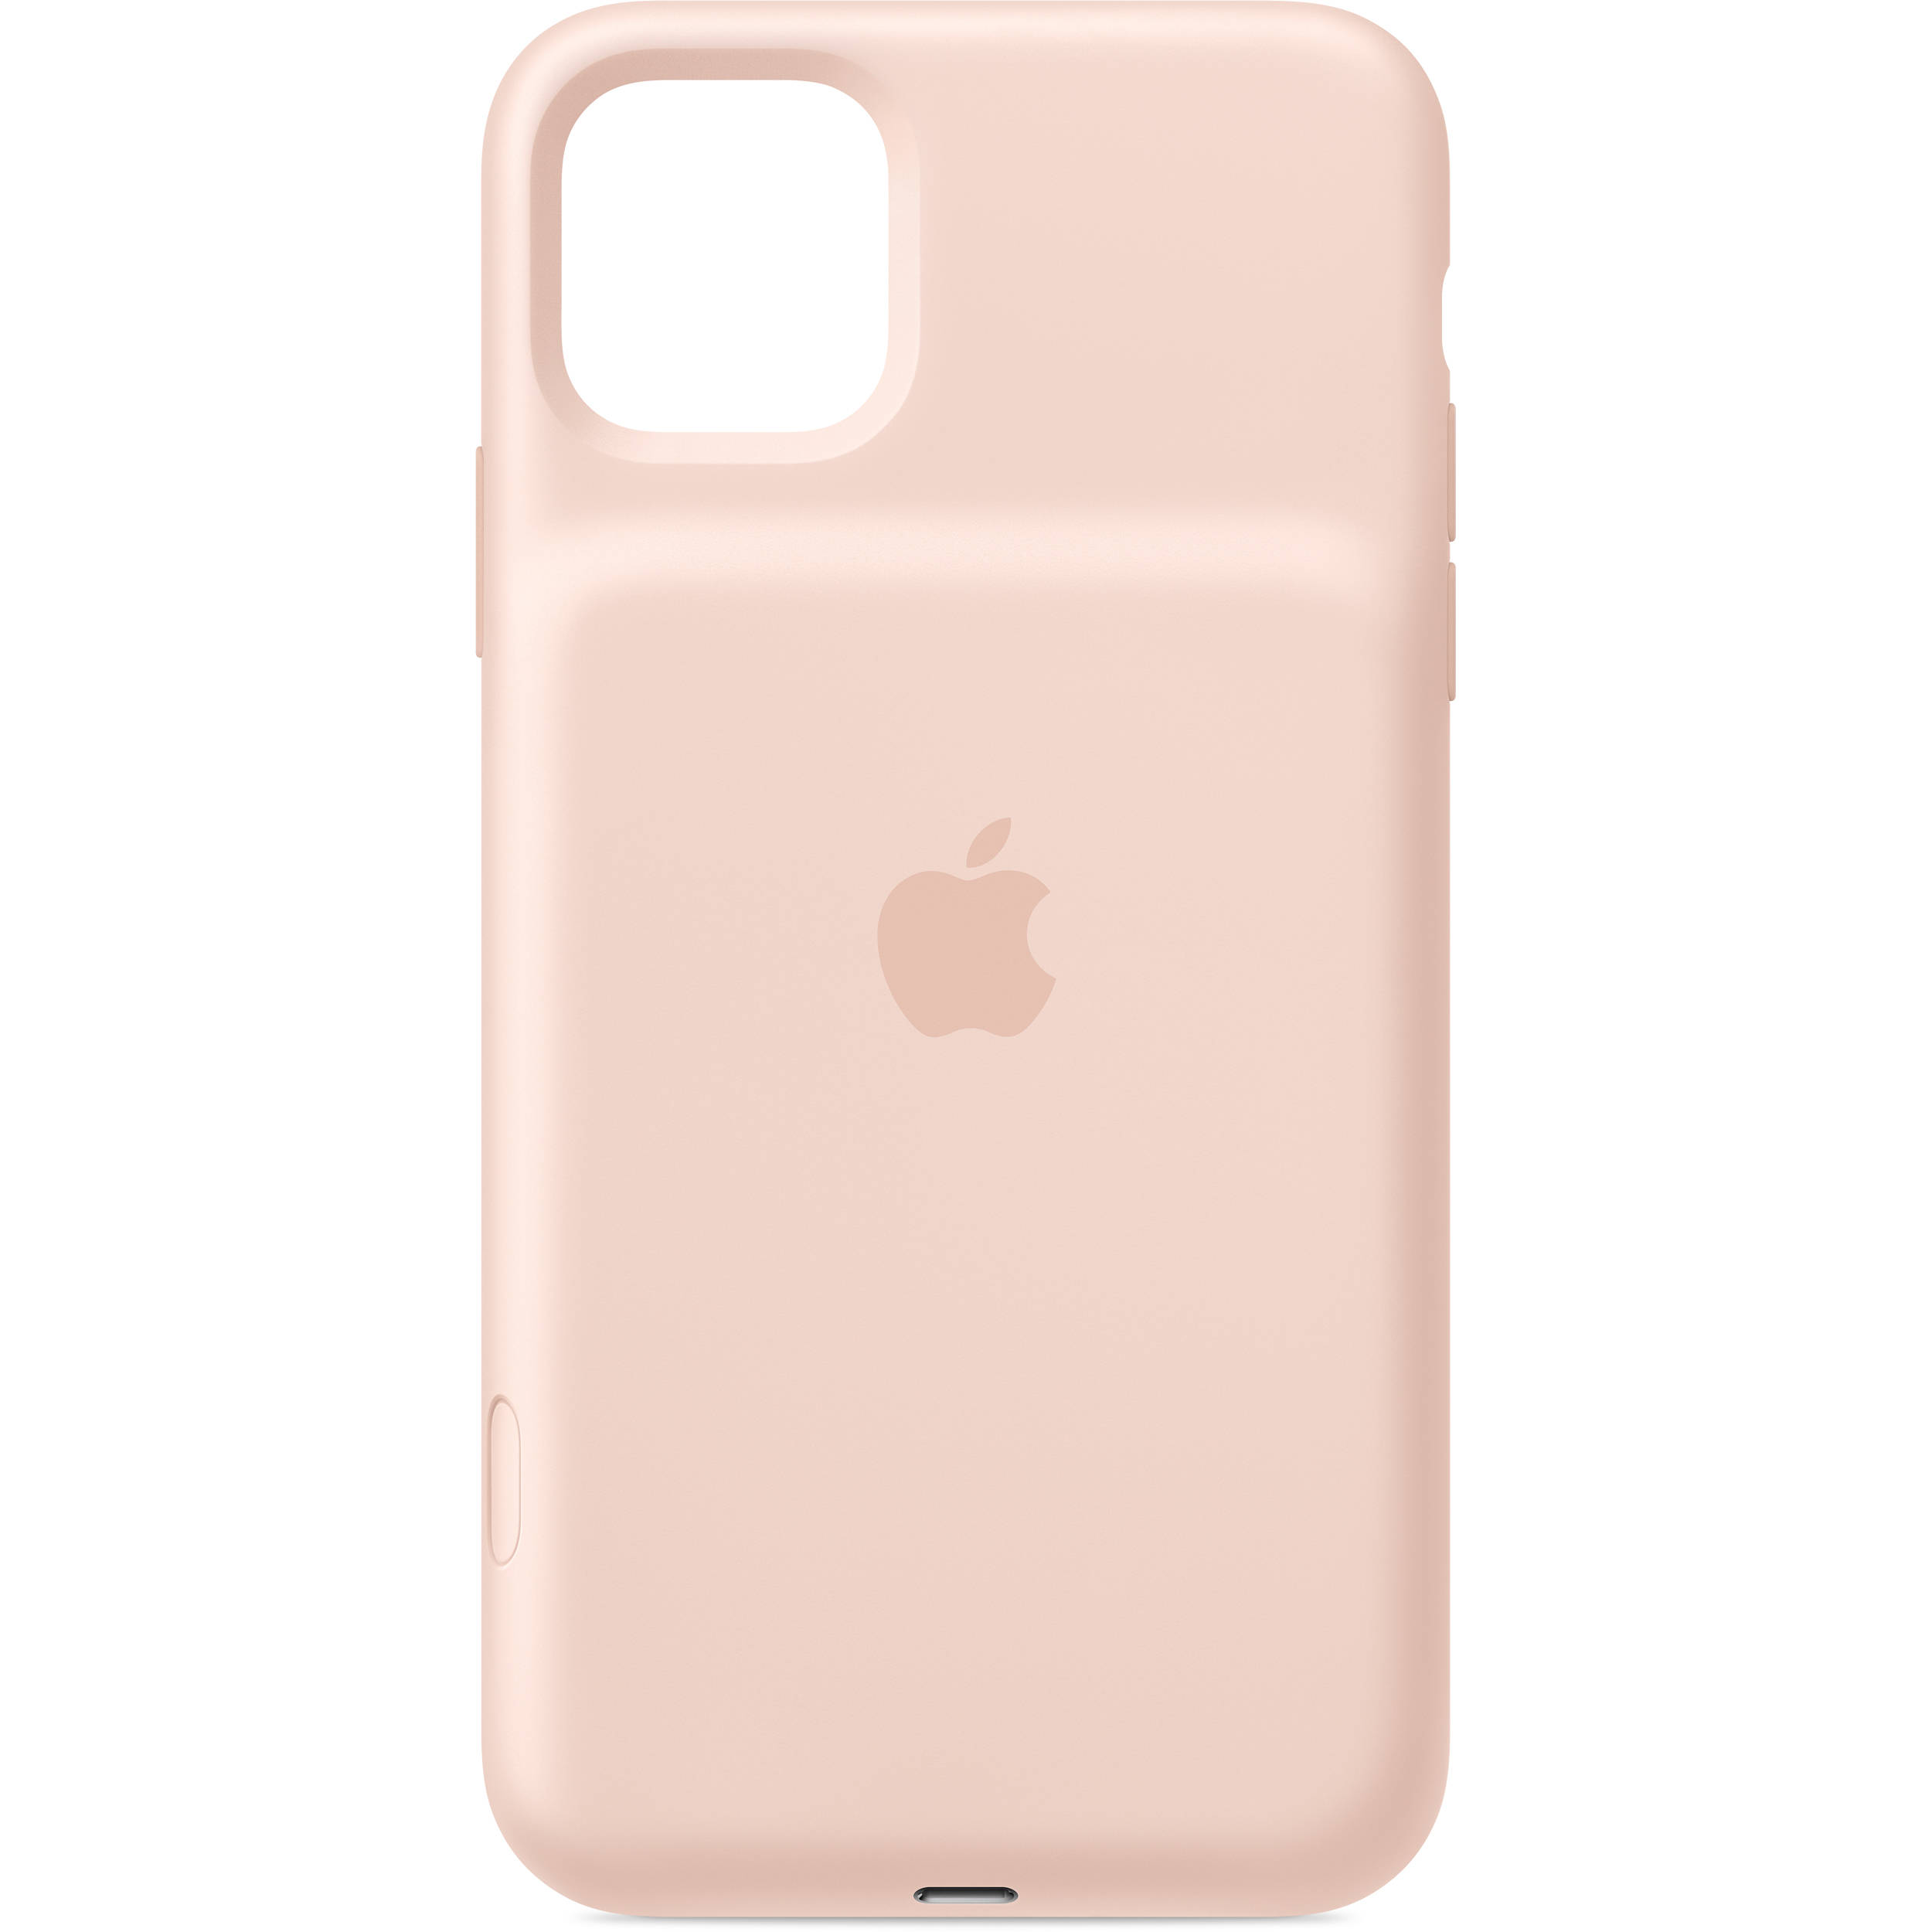 Apple Smart Battery Case With Wireless Charging For Iphone 11 Pro Max Pink Sand